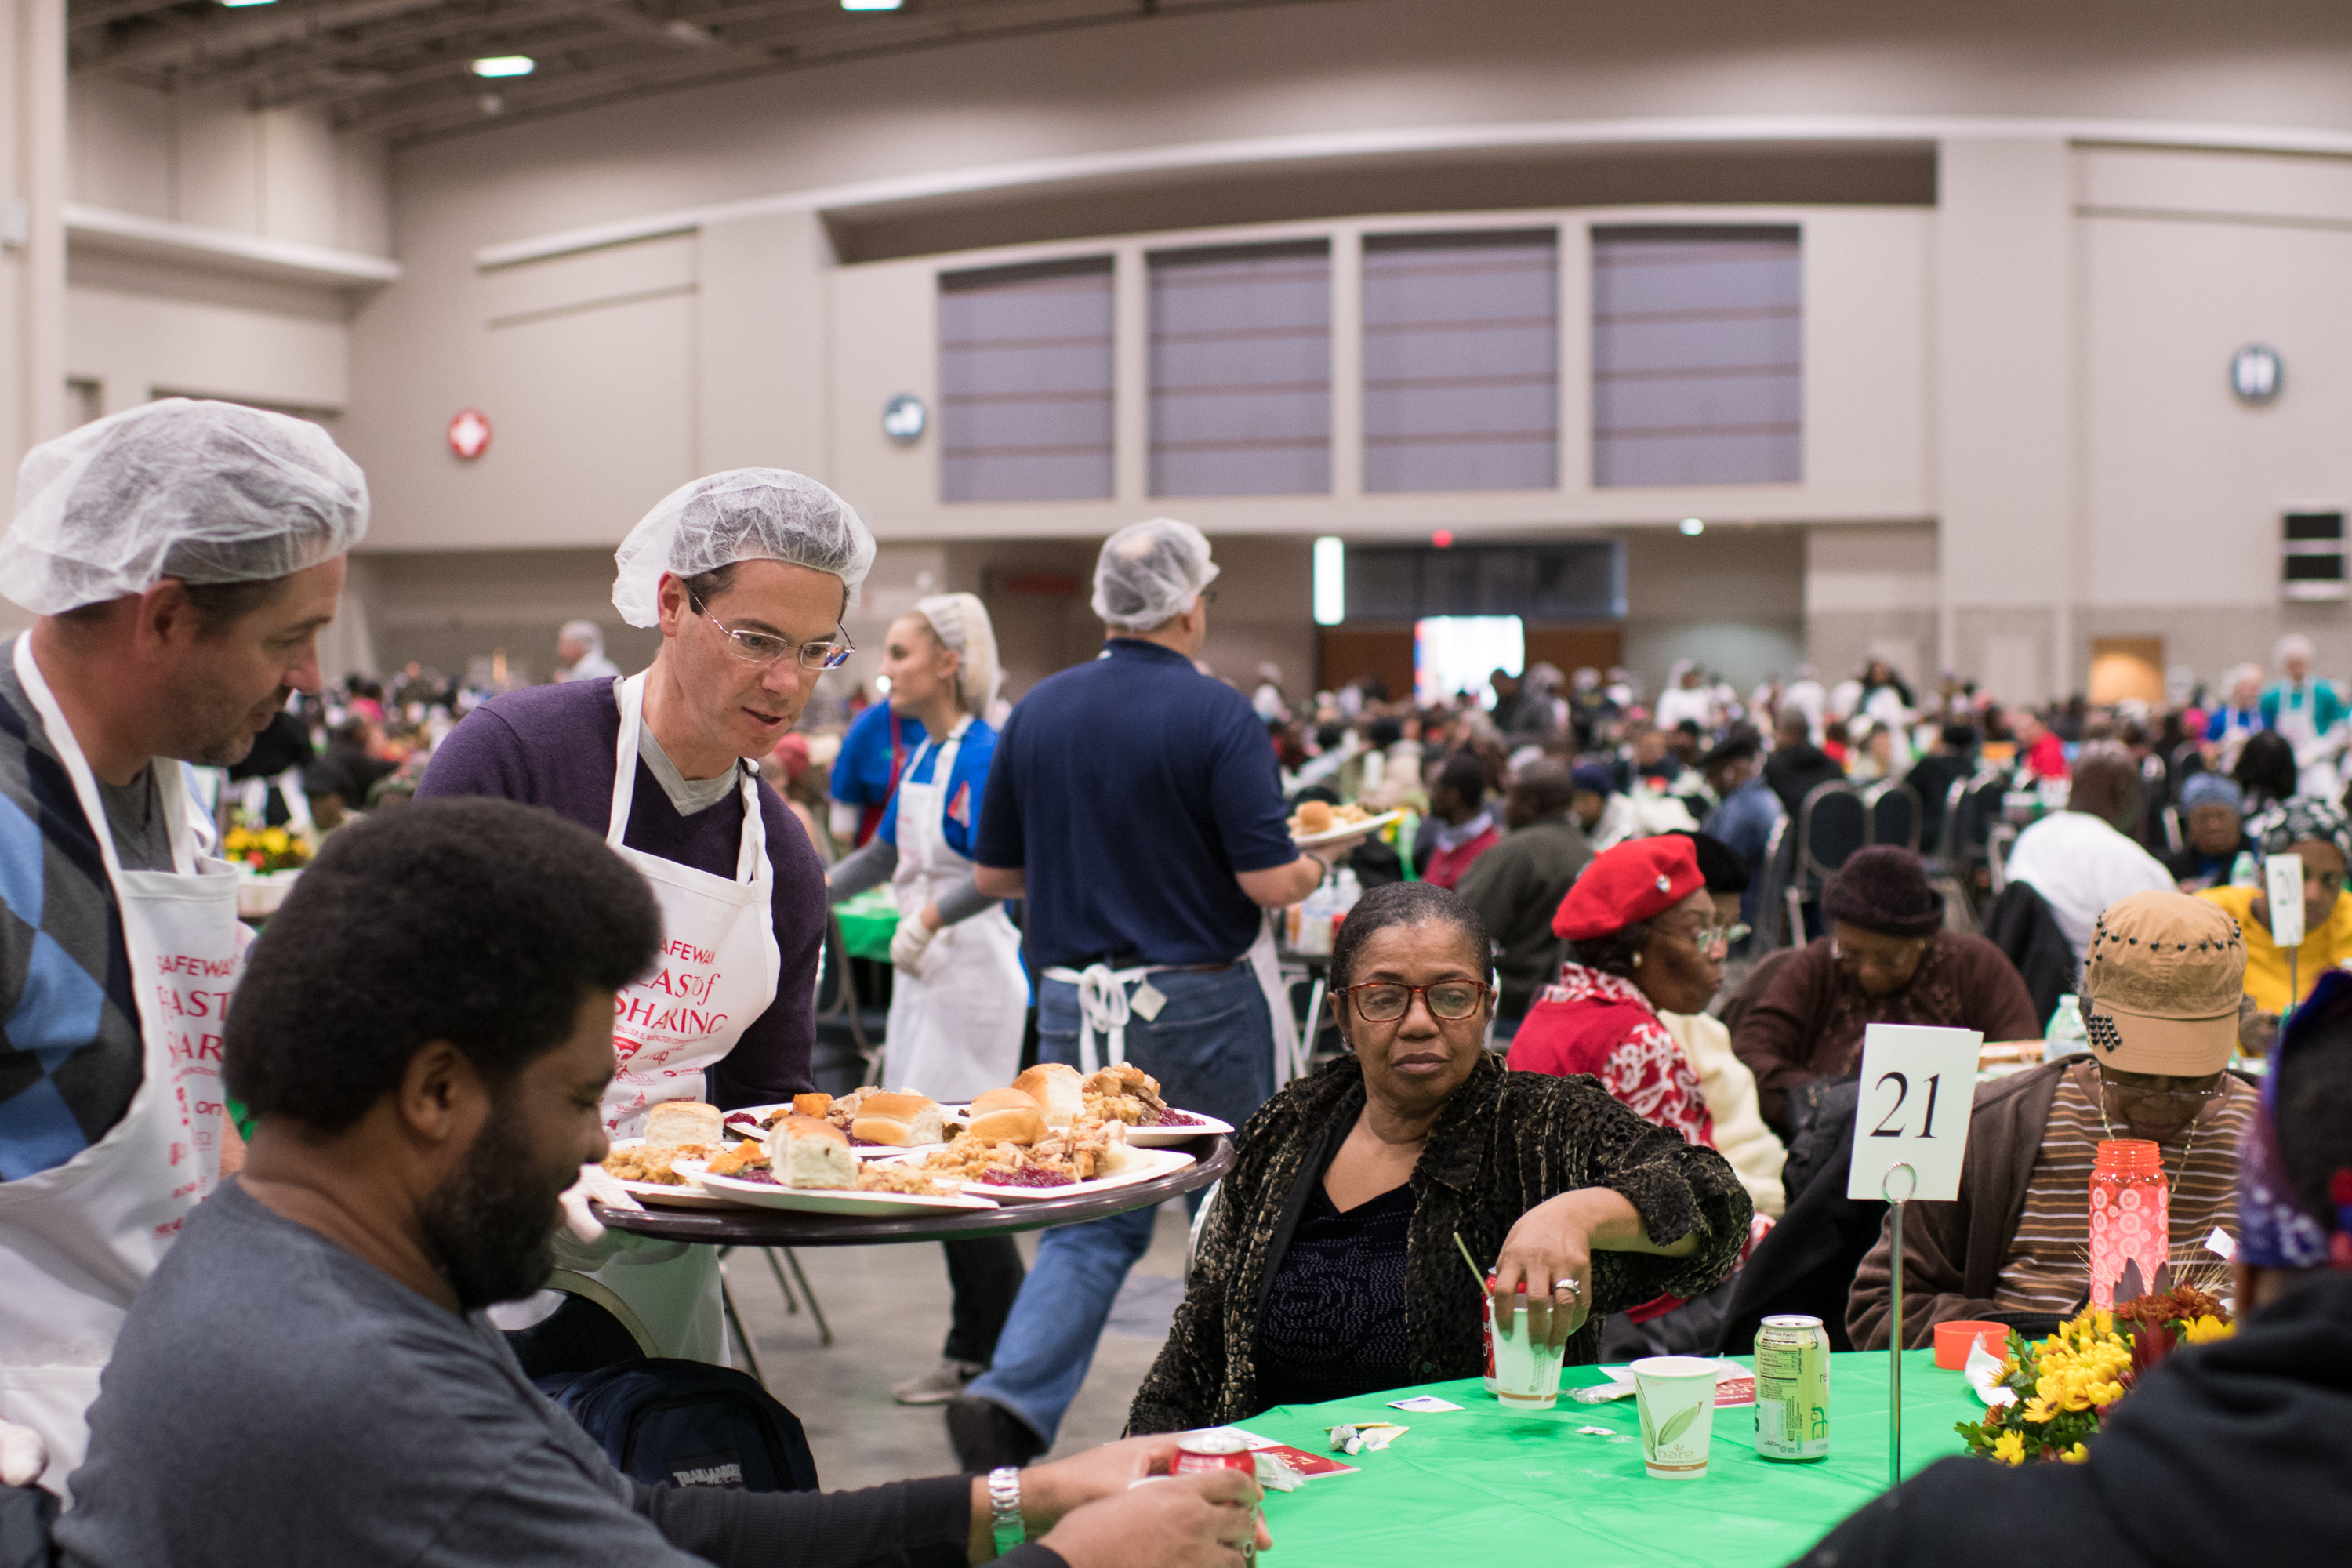 Volunteers serve meals to city residents at Safeway Feast of Sharing. (Image: Courtesy Events DC)